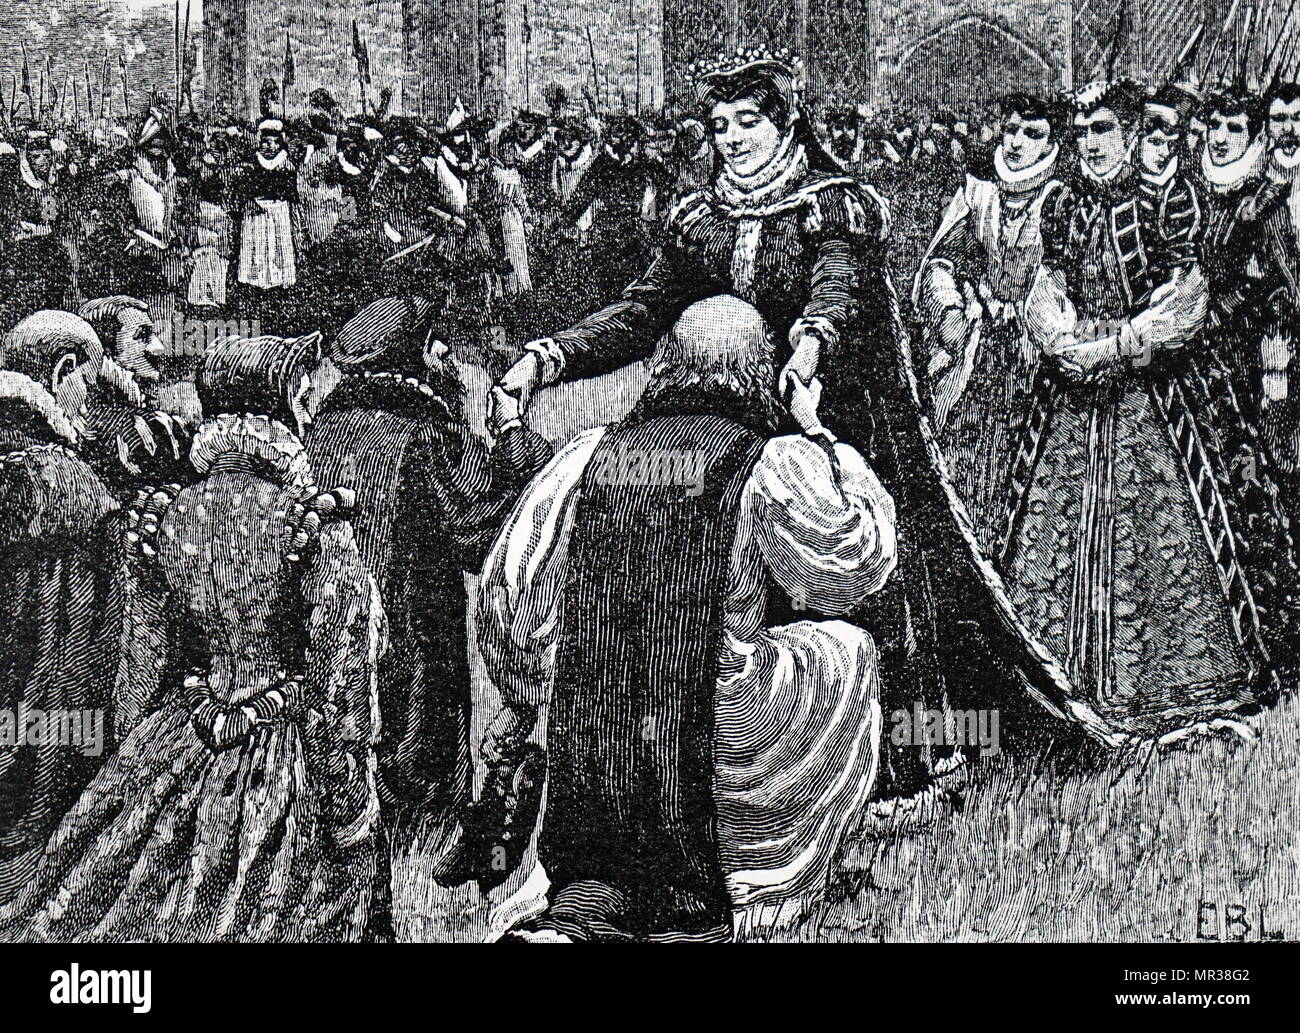 Engraving depicting Mary, Queen of Scots being greeted by state prisoners in the Tower of London. Mary, Queen of Scots (1542-1587) also known as Mary Stuart or Mary I, reigned over Scotland from 1542-1567. She was found guilty of plotting to assassinate Queen Elizabeth I in 1586 and was beheaded the following year. Dated 16th century - Stock Image